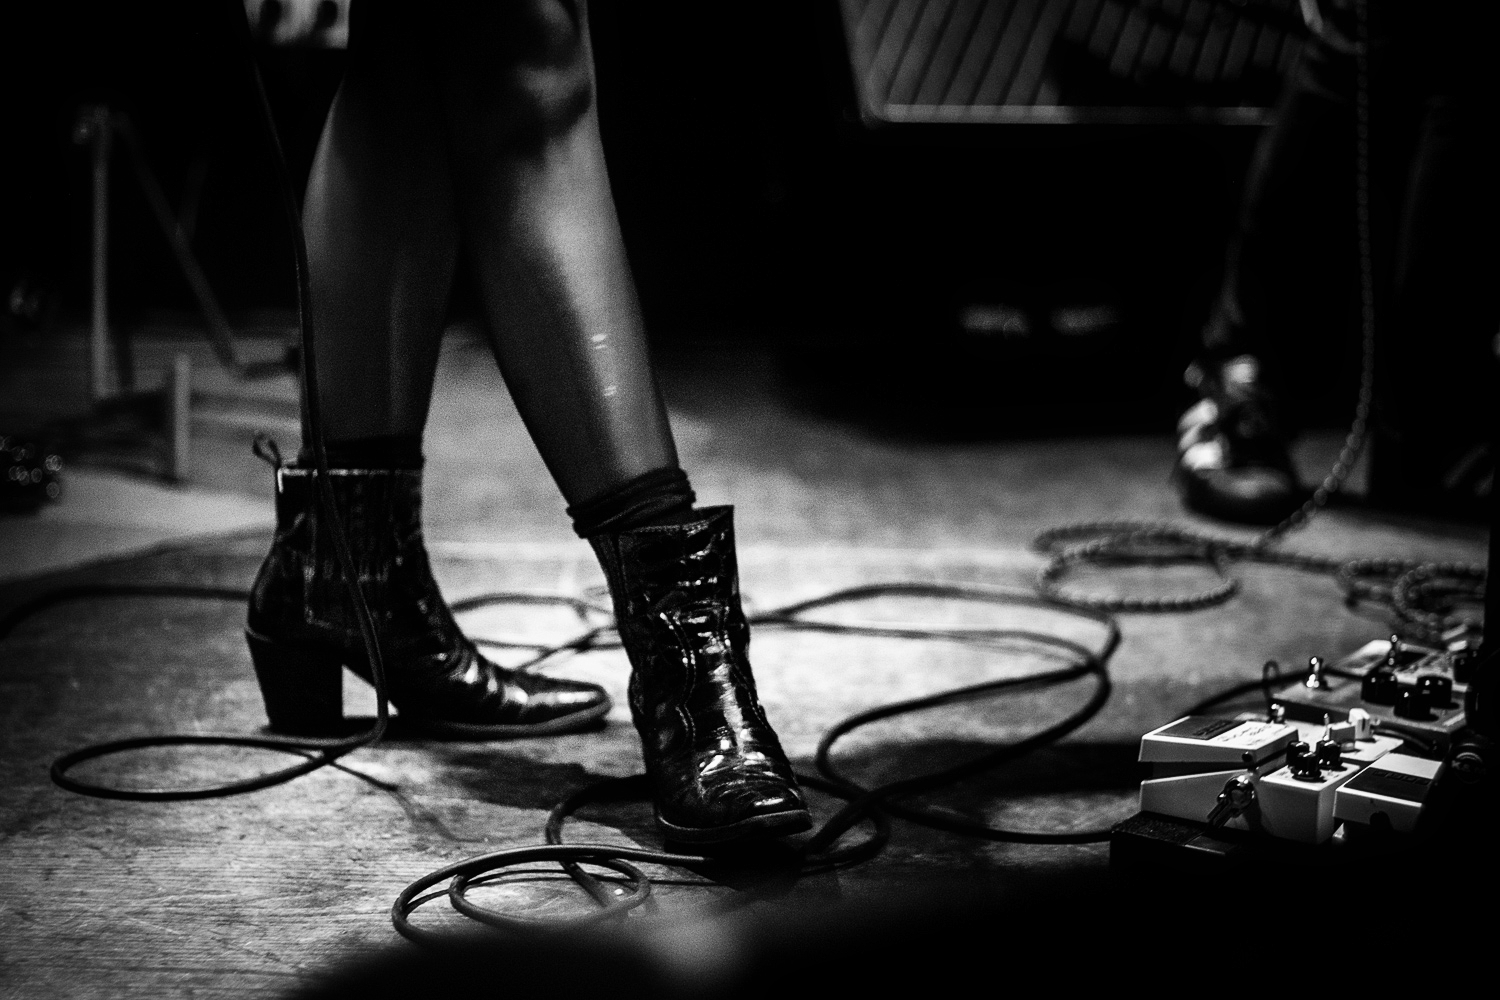 20190113-006-Laura-Carbone-@-Backstage-Club-Cred_Michael_Lamertz_@indie.and_.more_.jpg